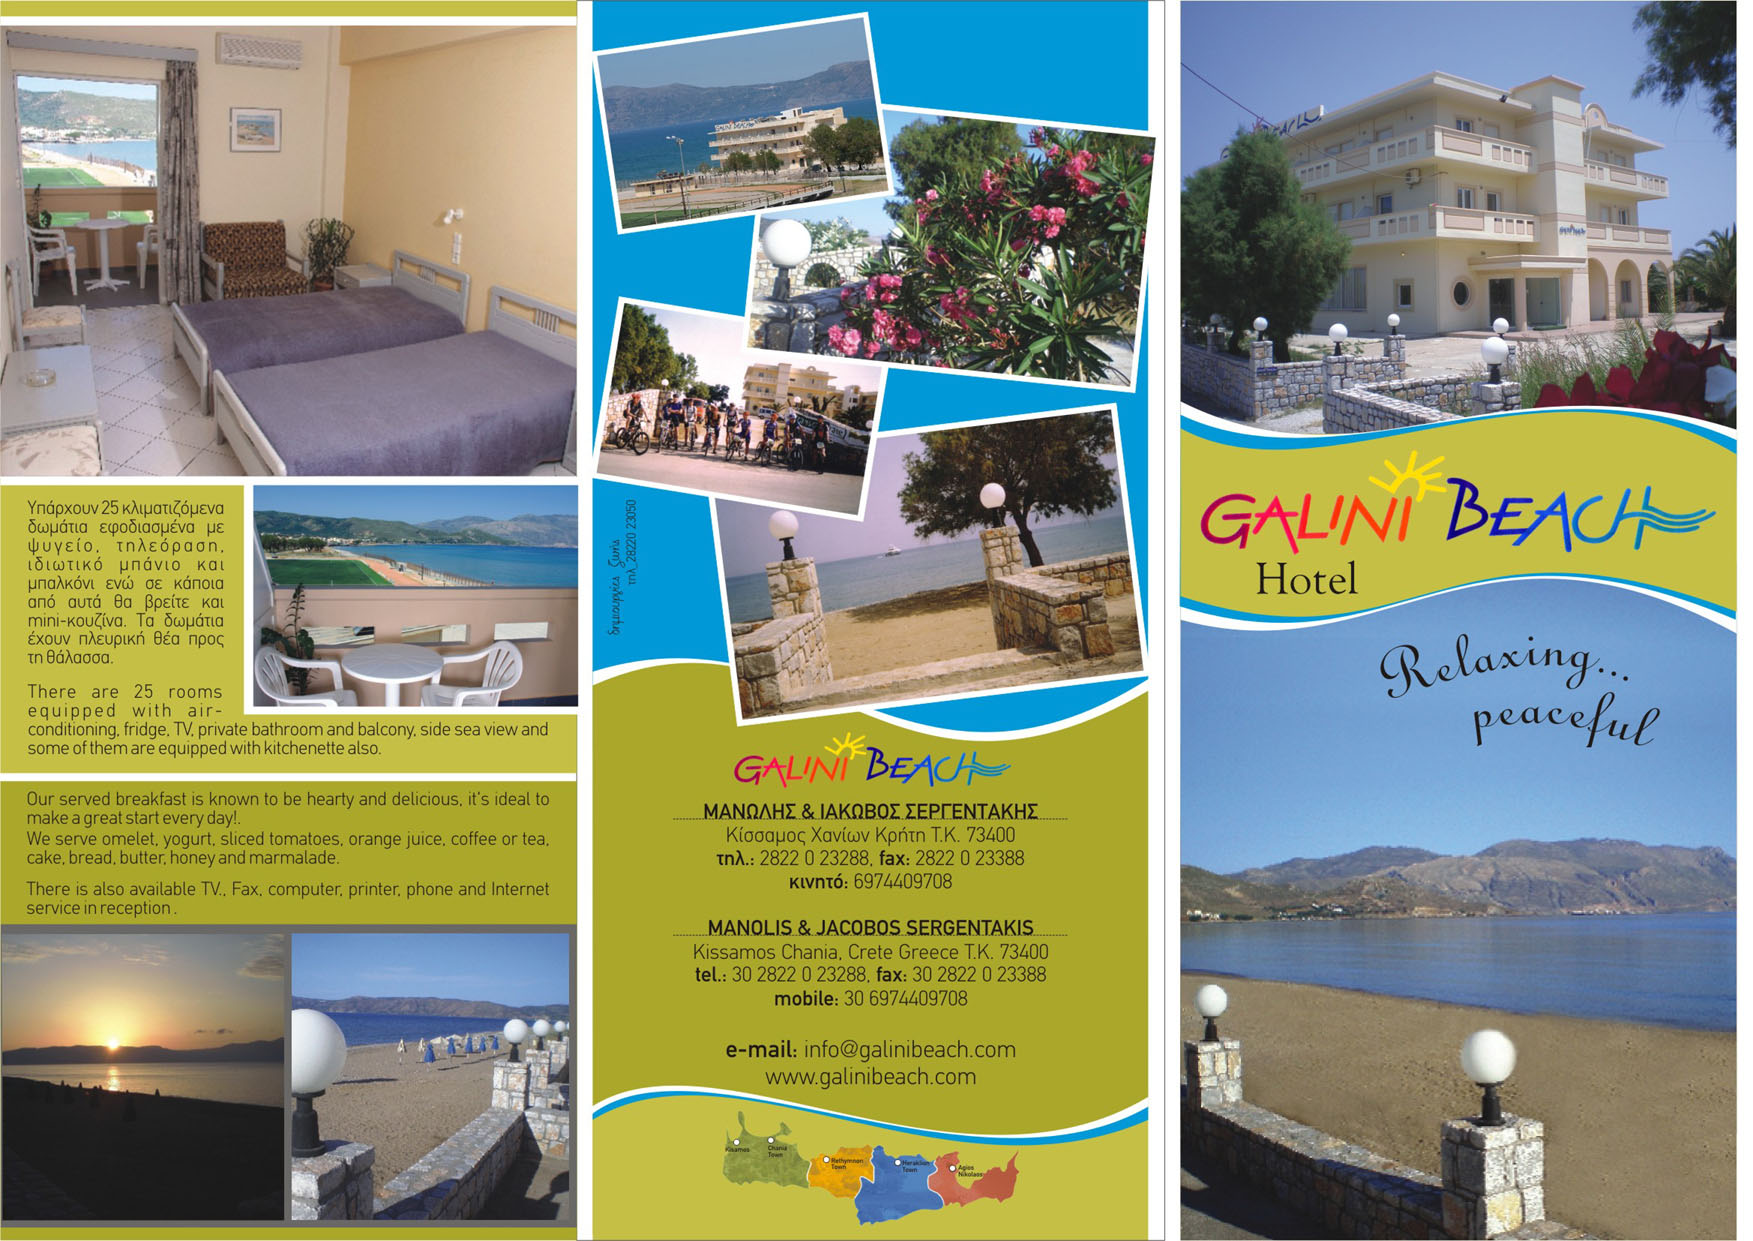 ... Brochure http://galinibeach.com/blog/galini-beach-hotel-brochure-12